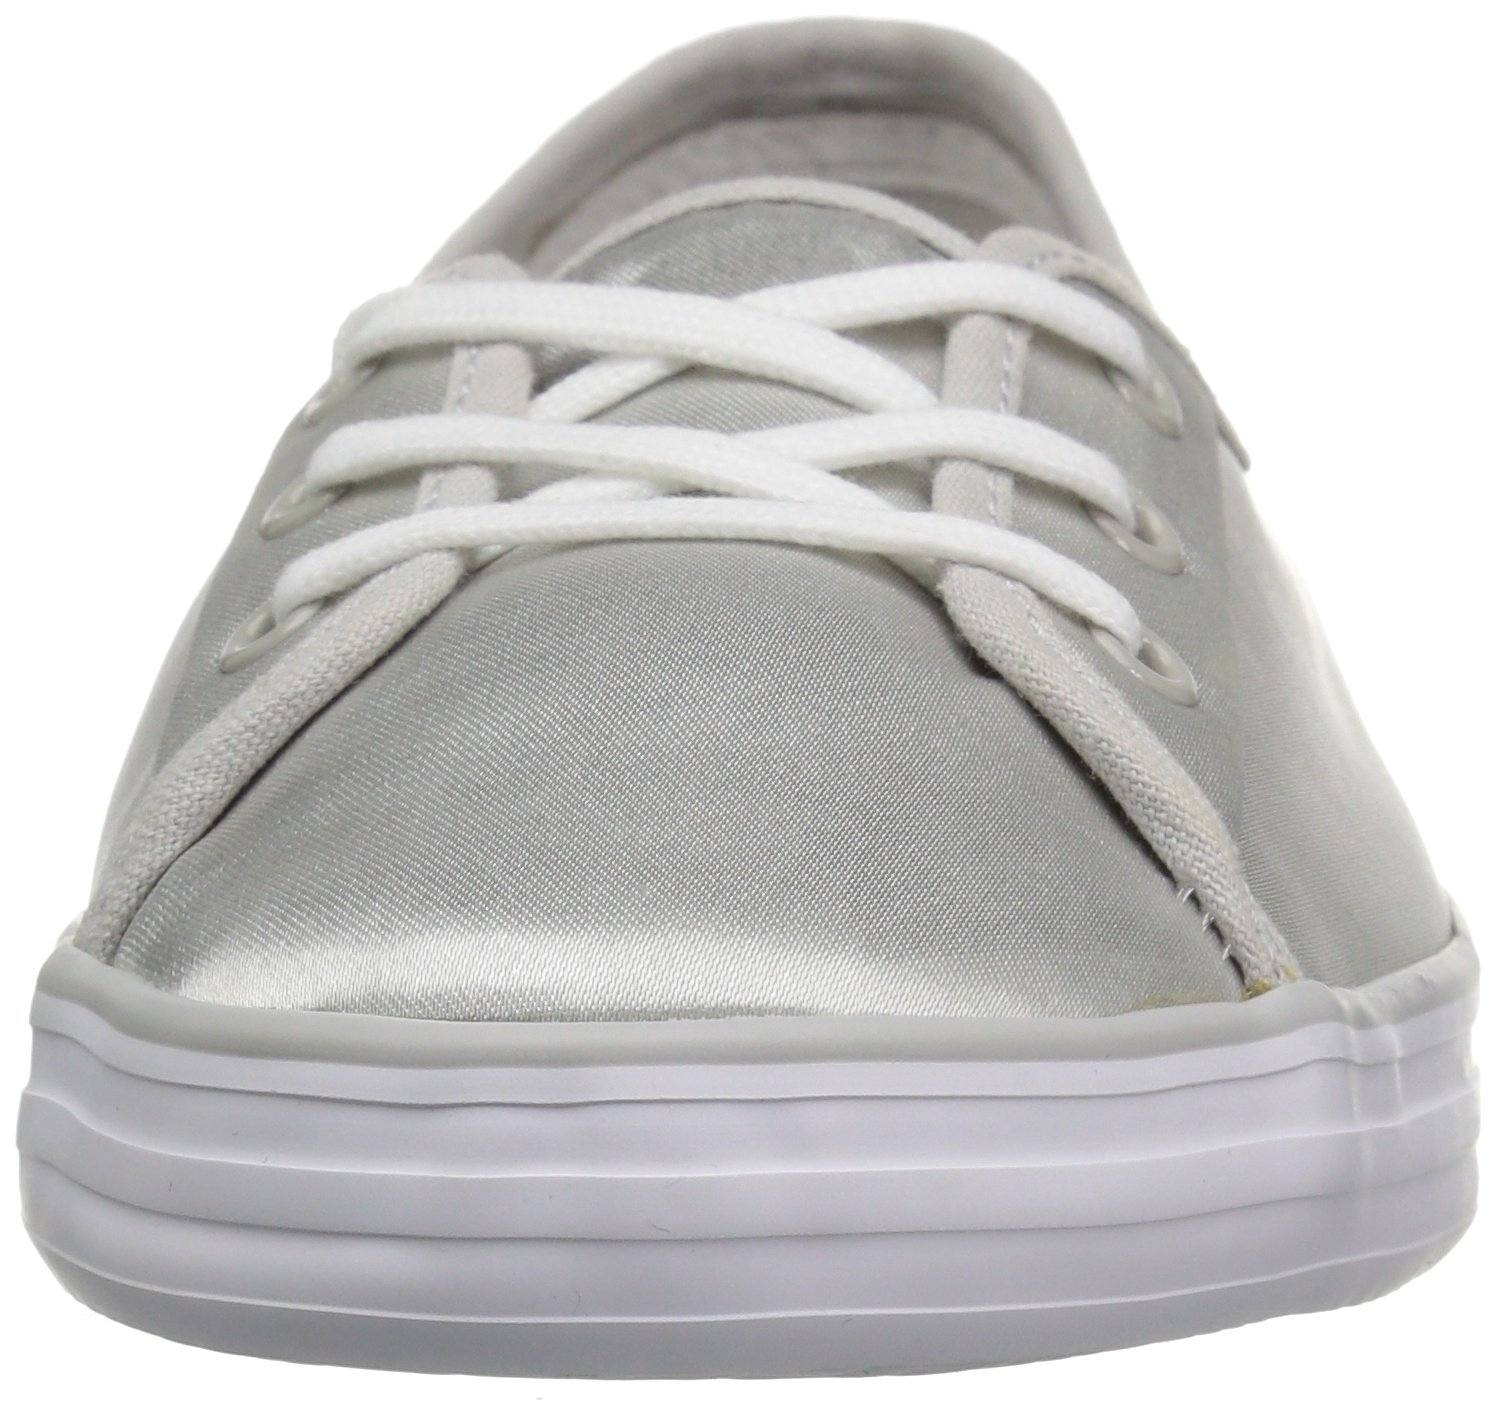 Lacoste Women's Ziane Chunky Sneakers Grey/White B071X87FC9 6.5 B(M) US|Light Grey/White Sneakers Textile 2d8be0